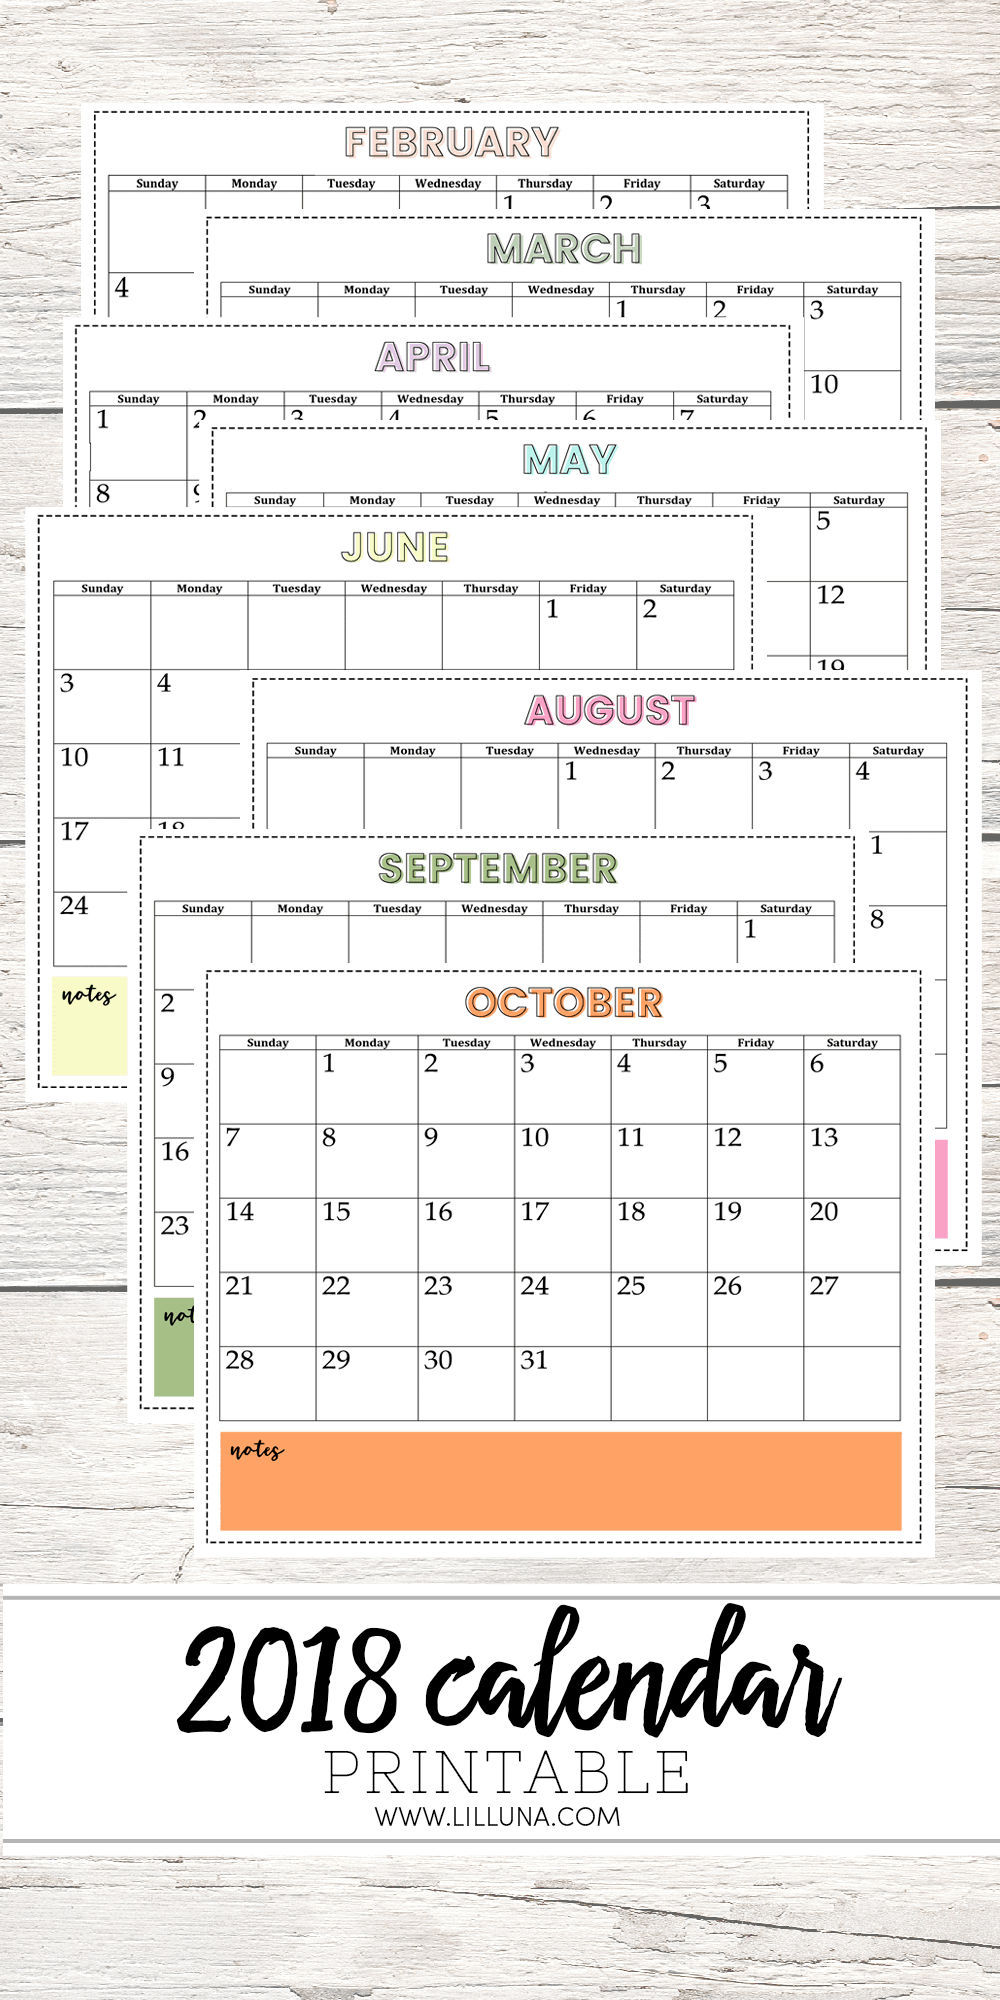 free 2018 calendar download print and use to keep organized with monthly events